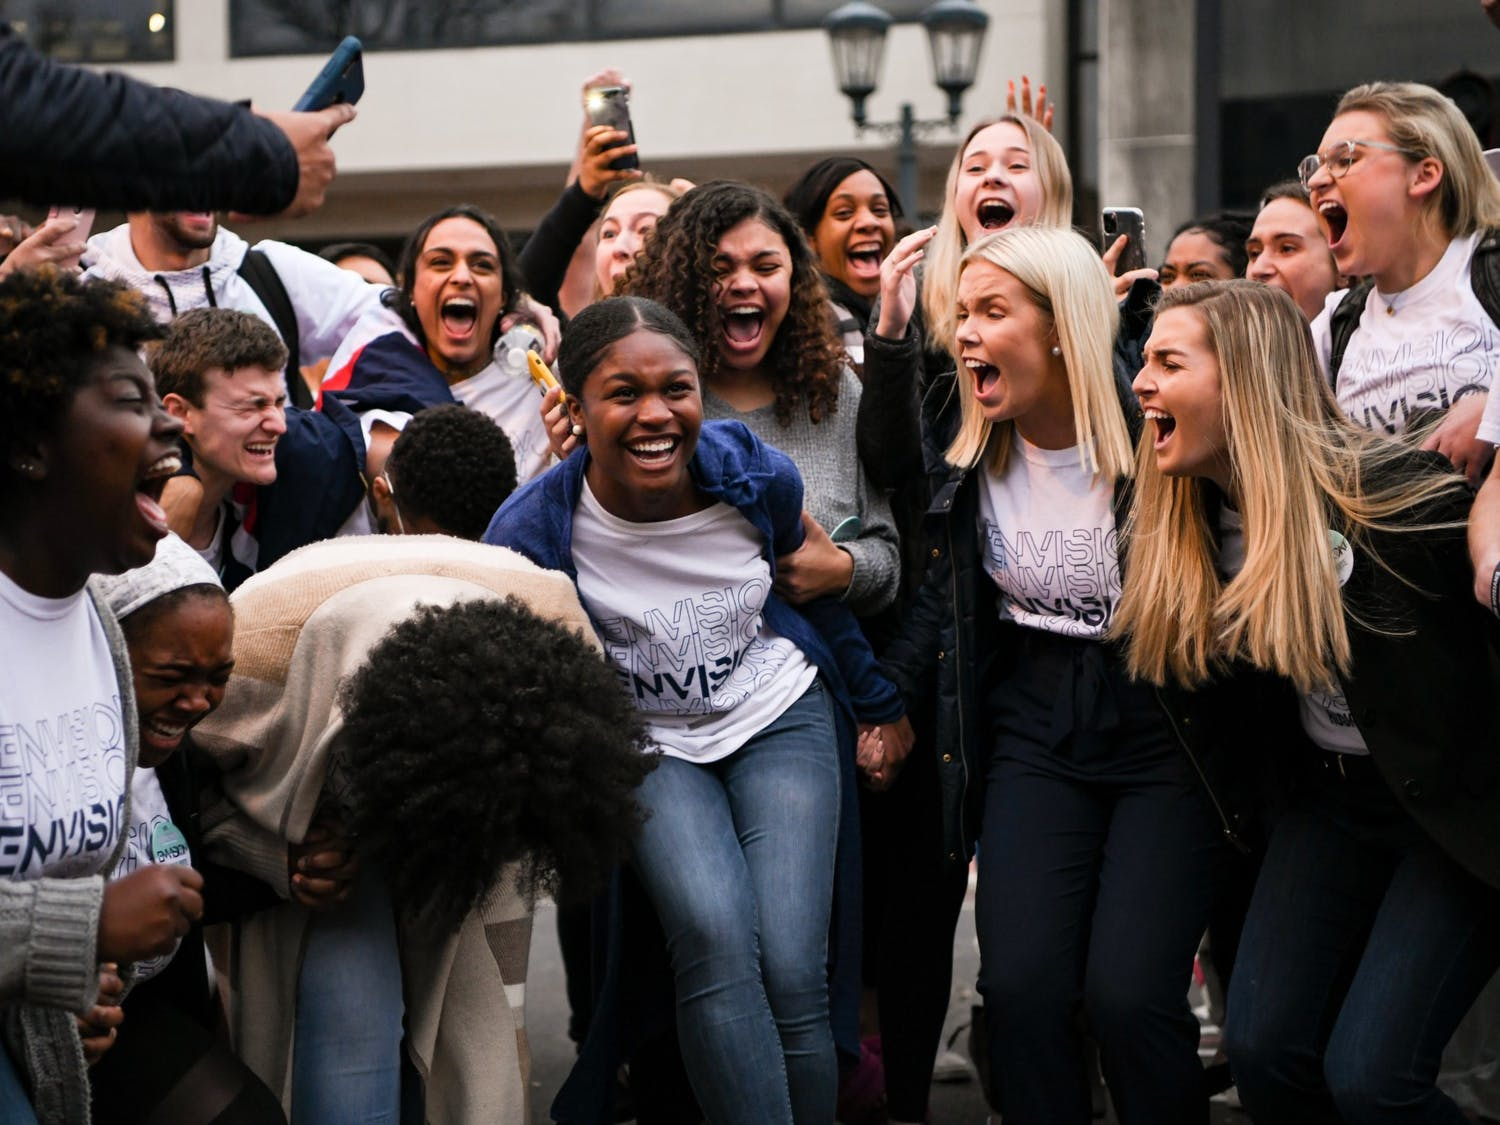 Newly elected Student Body Vice President Hannah White and Student Body President Issy Rushton celebrate their win surrounded by campaign supporters.